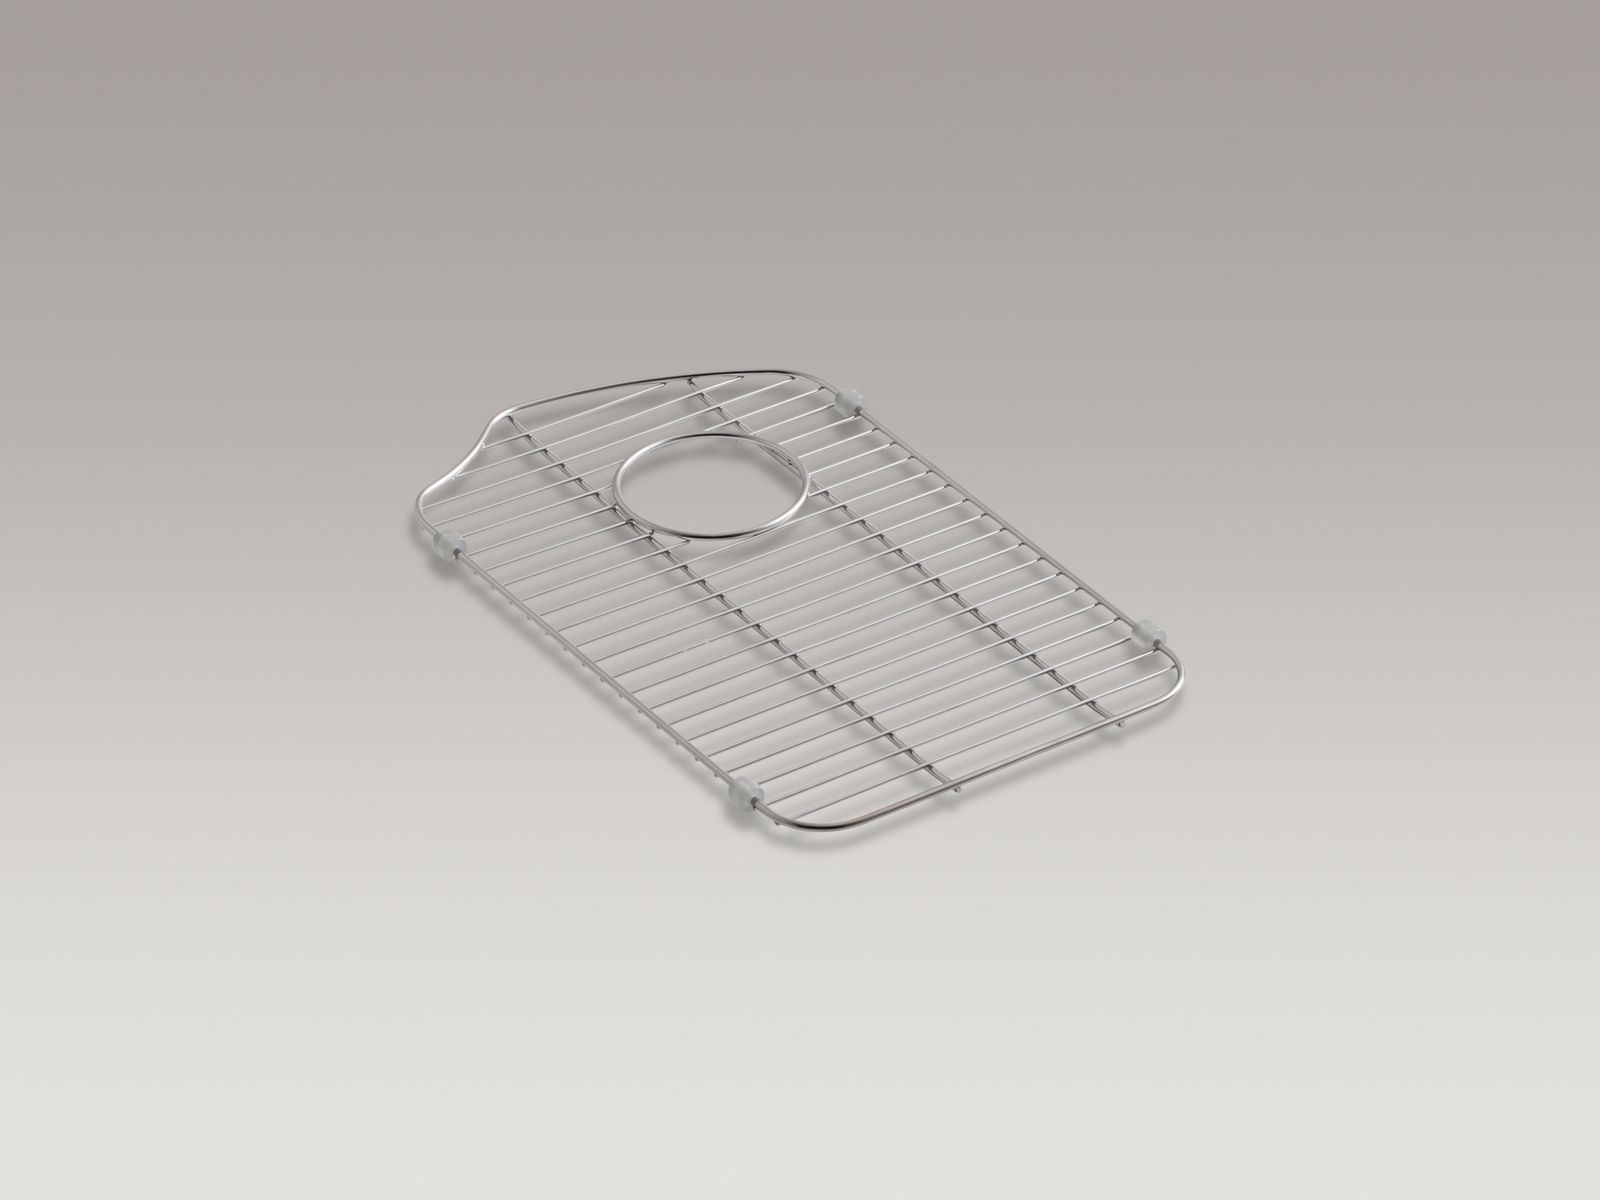 Bottom basin rack for right (small) basin of the Octave™ K-3844 / K-3845